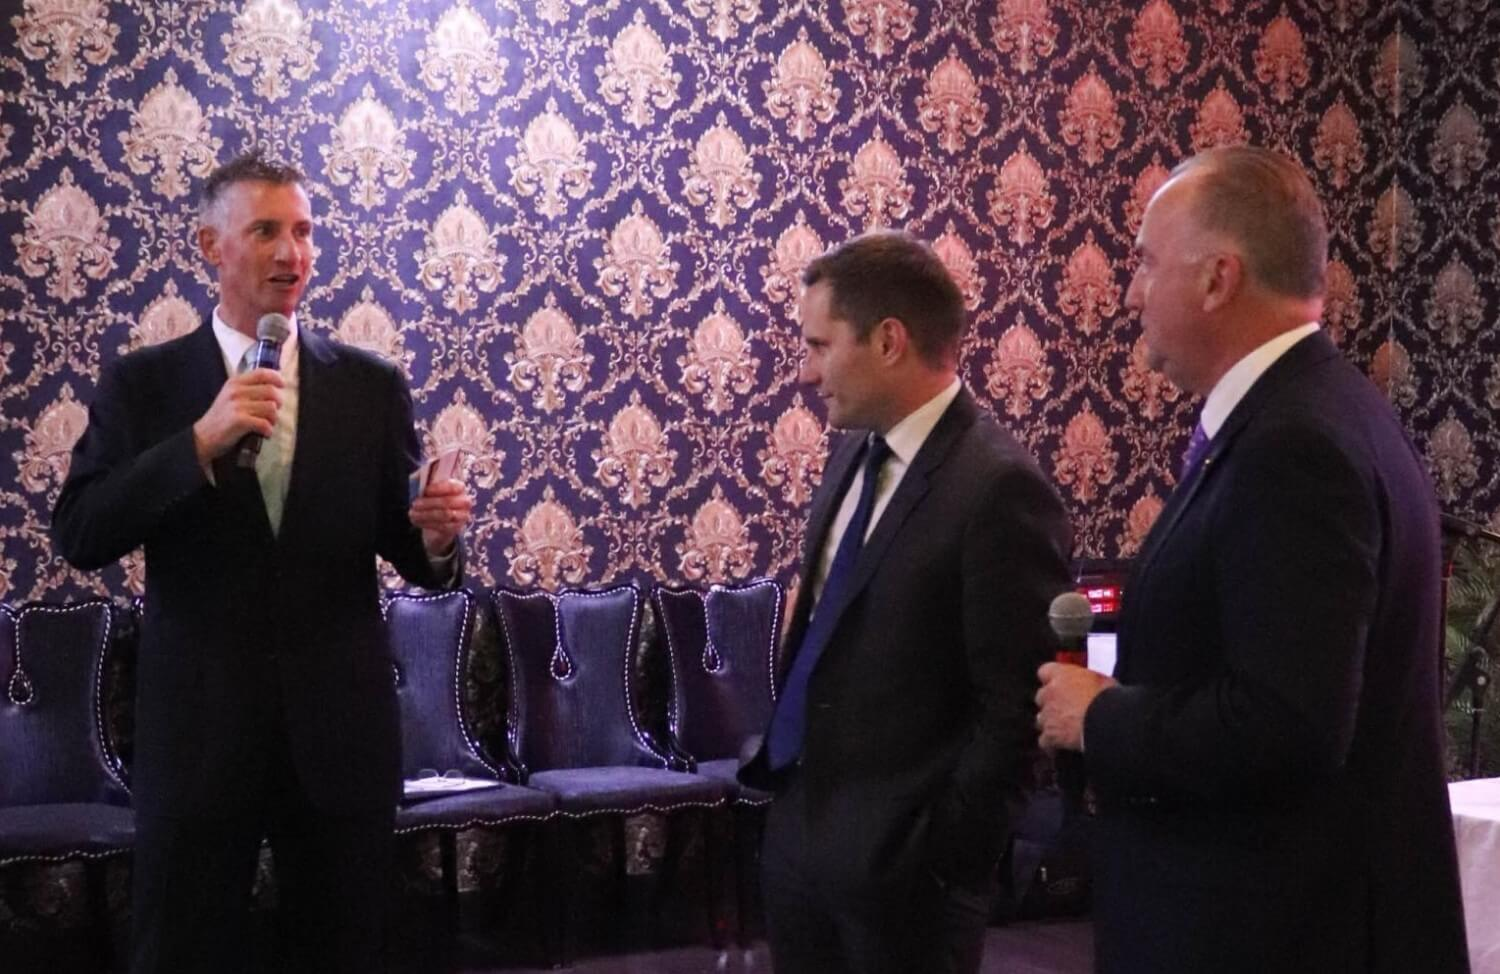 Interviewing - Alex Hawke MP and Steve Irons MP in 2019